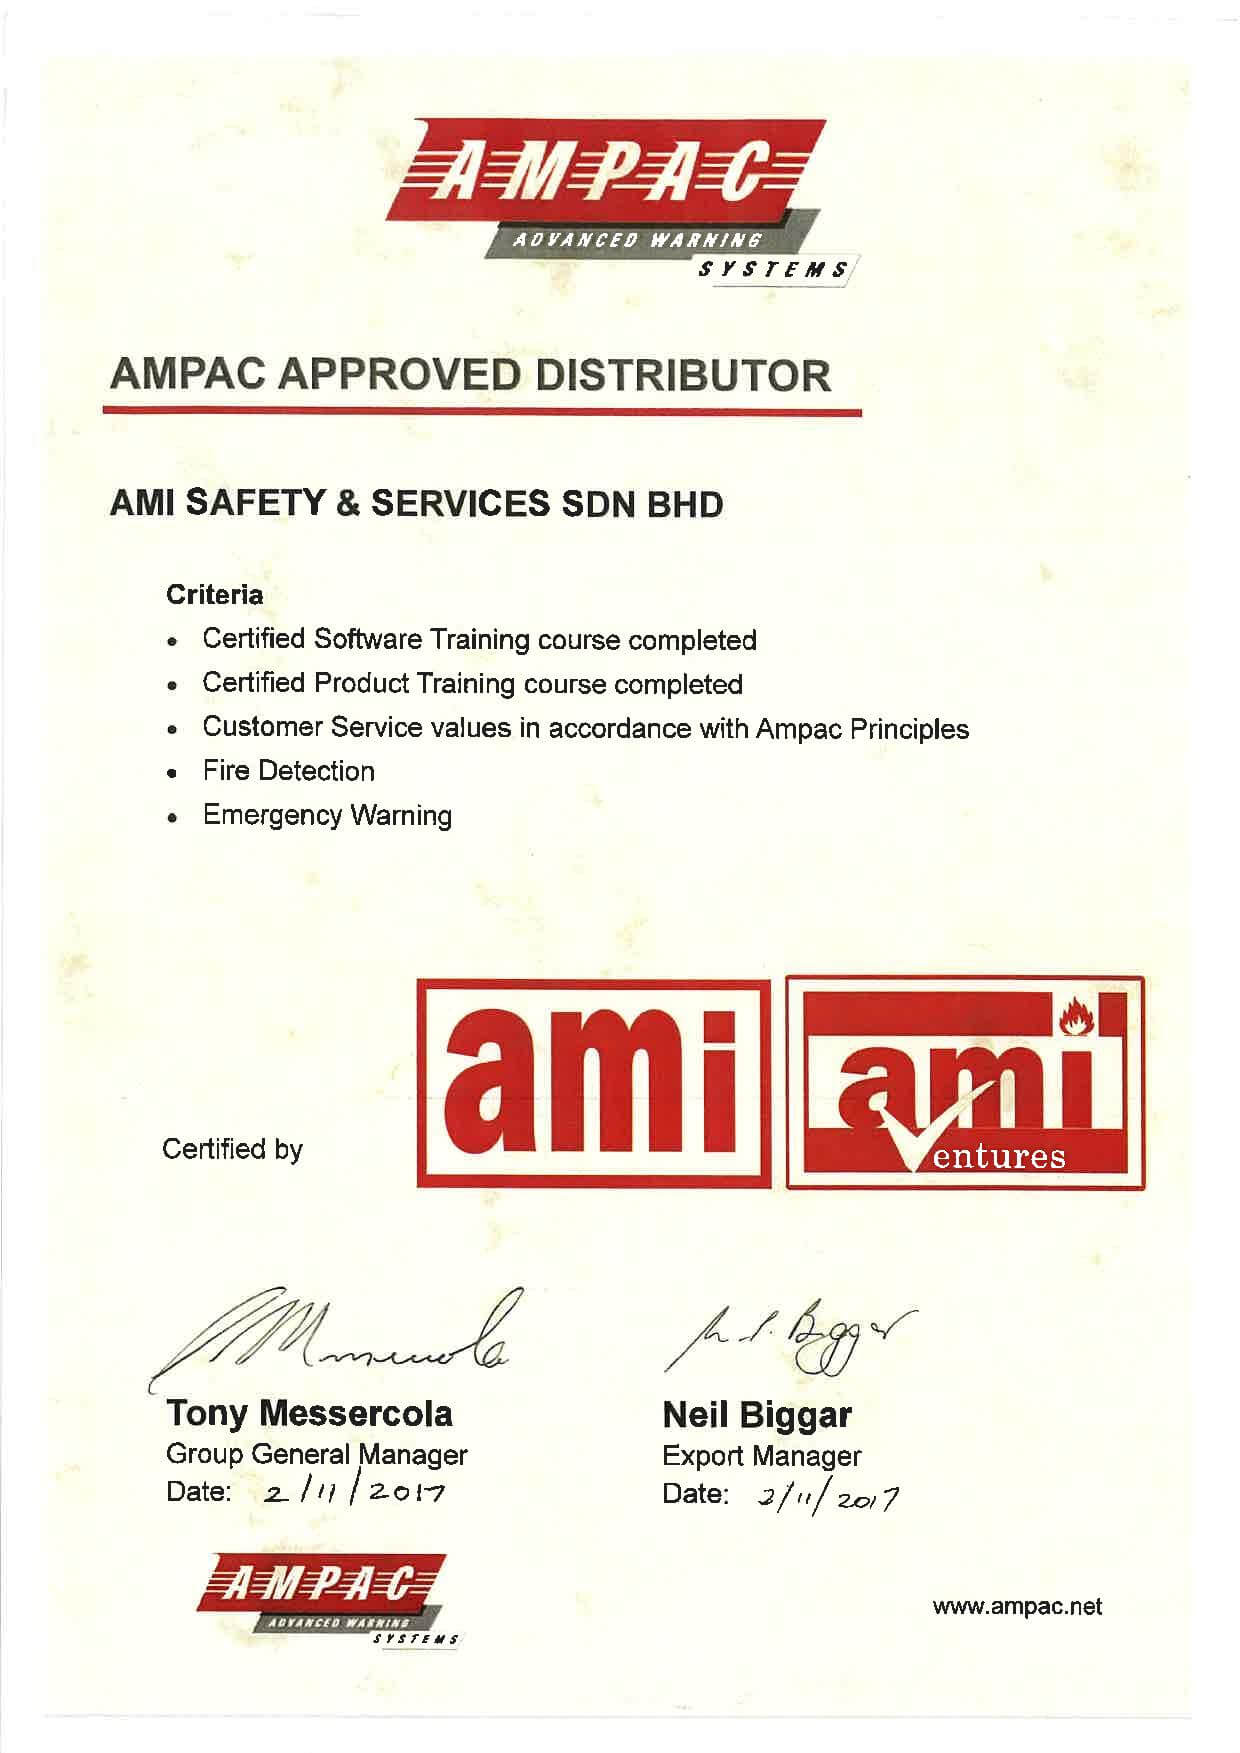 AMPAC Approved Distributor